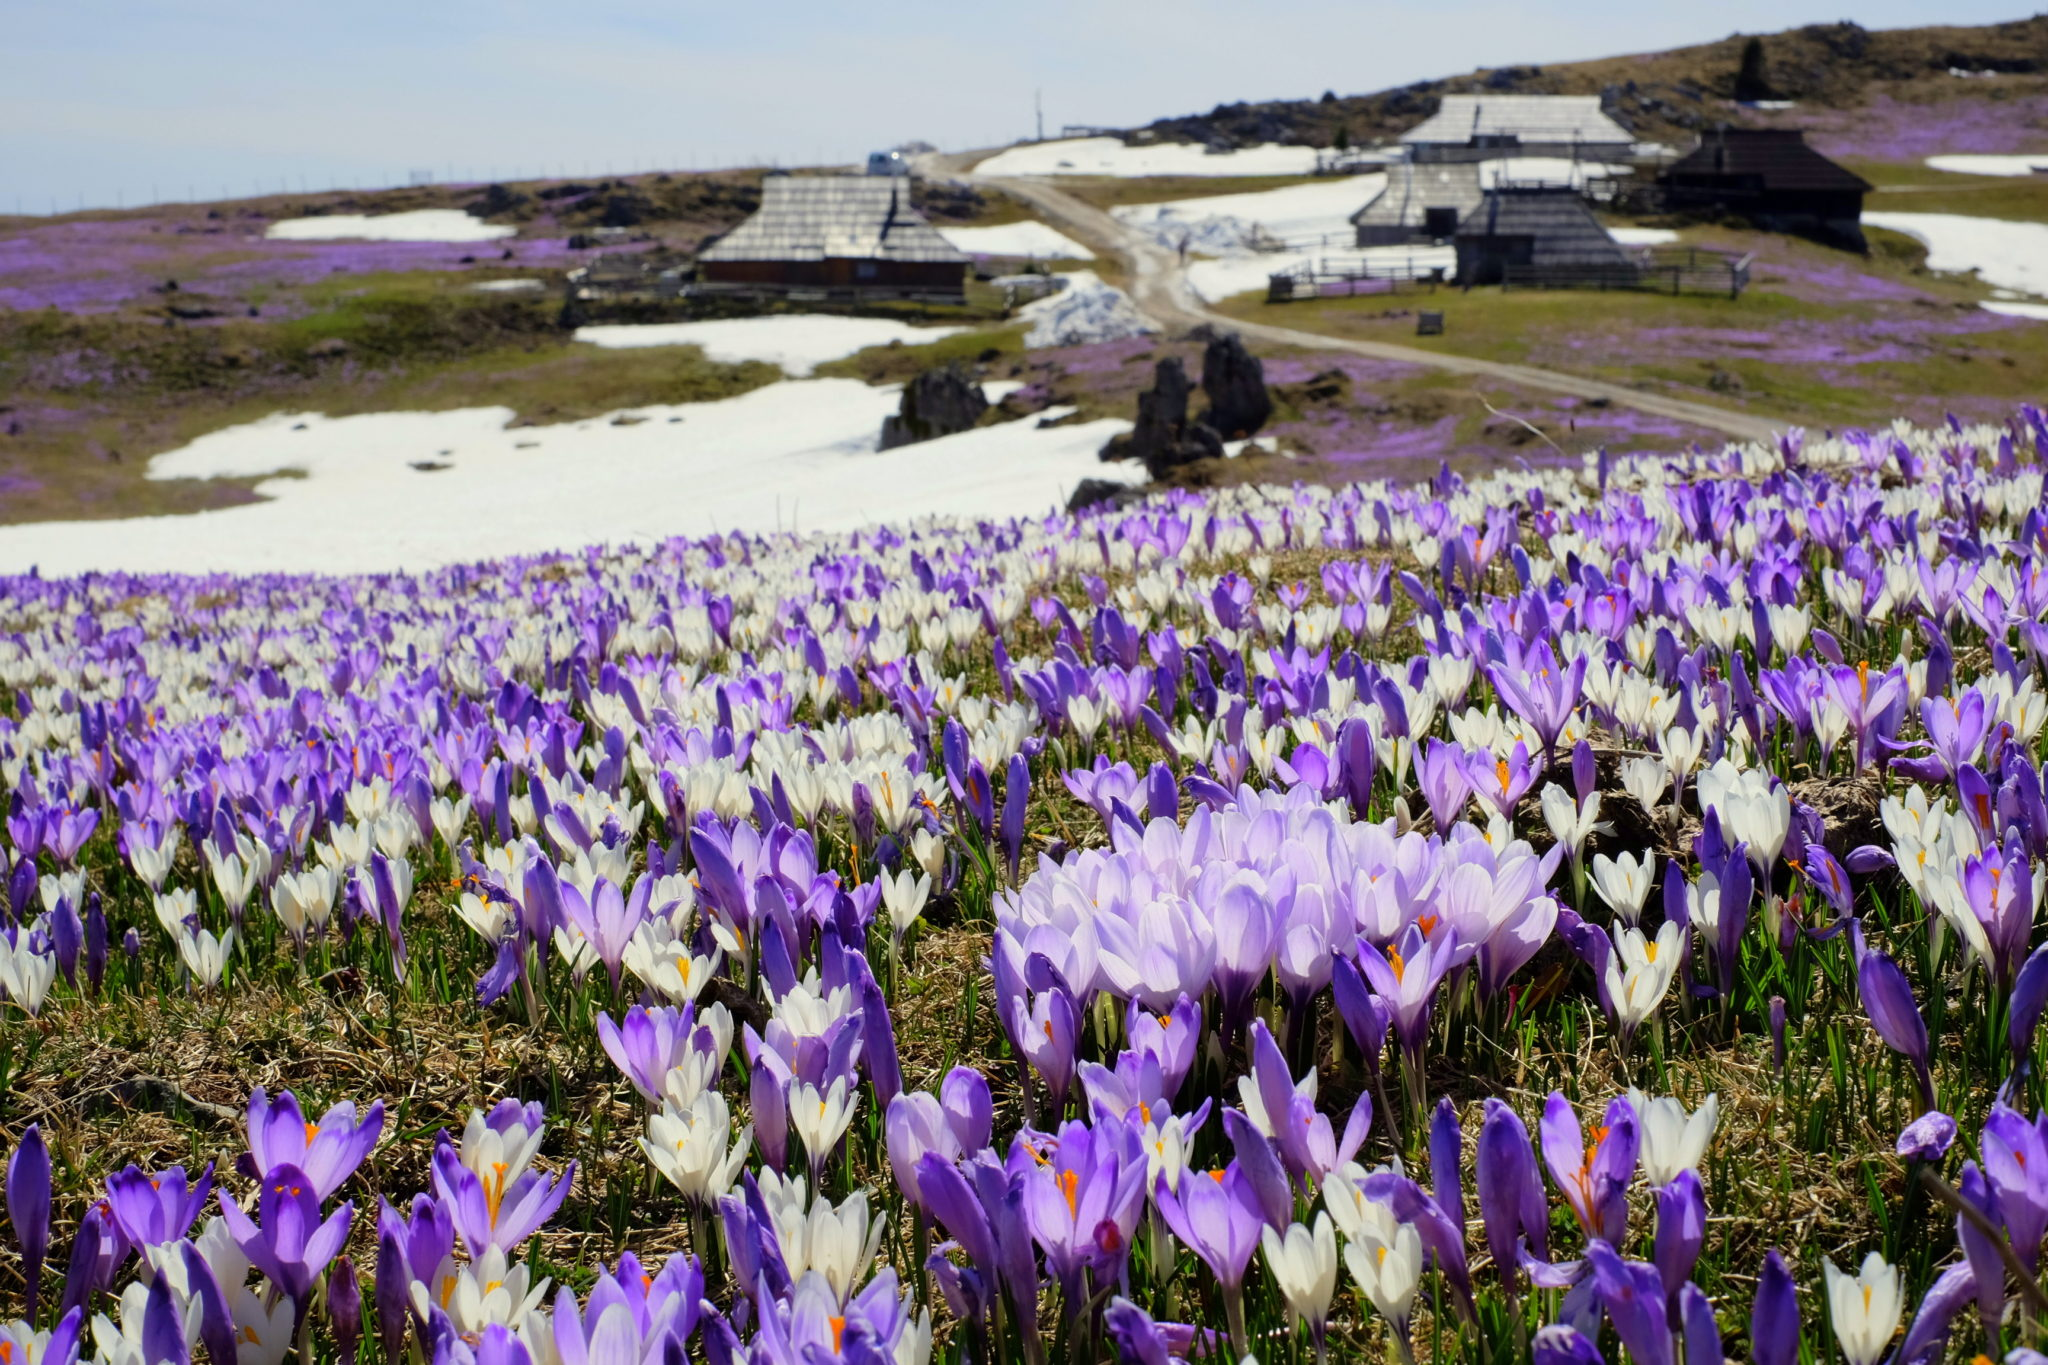 Crocuses on Mala Planina